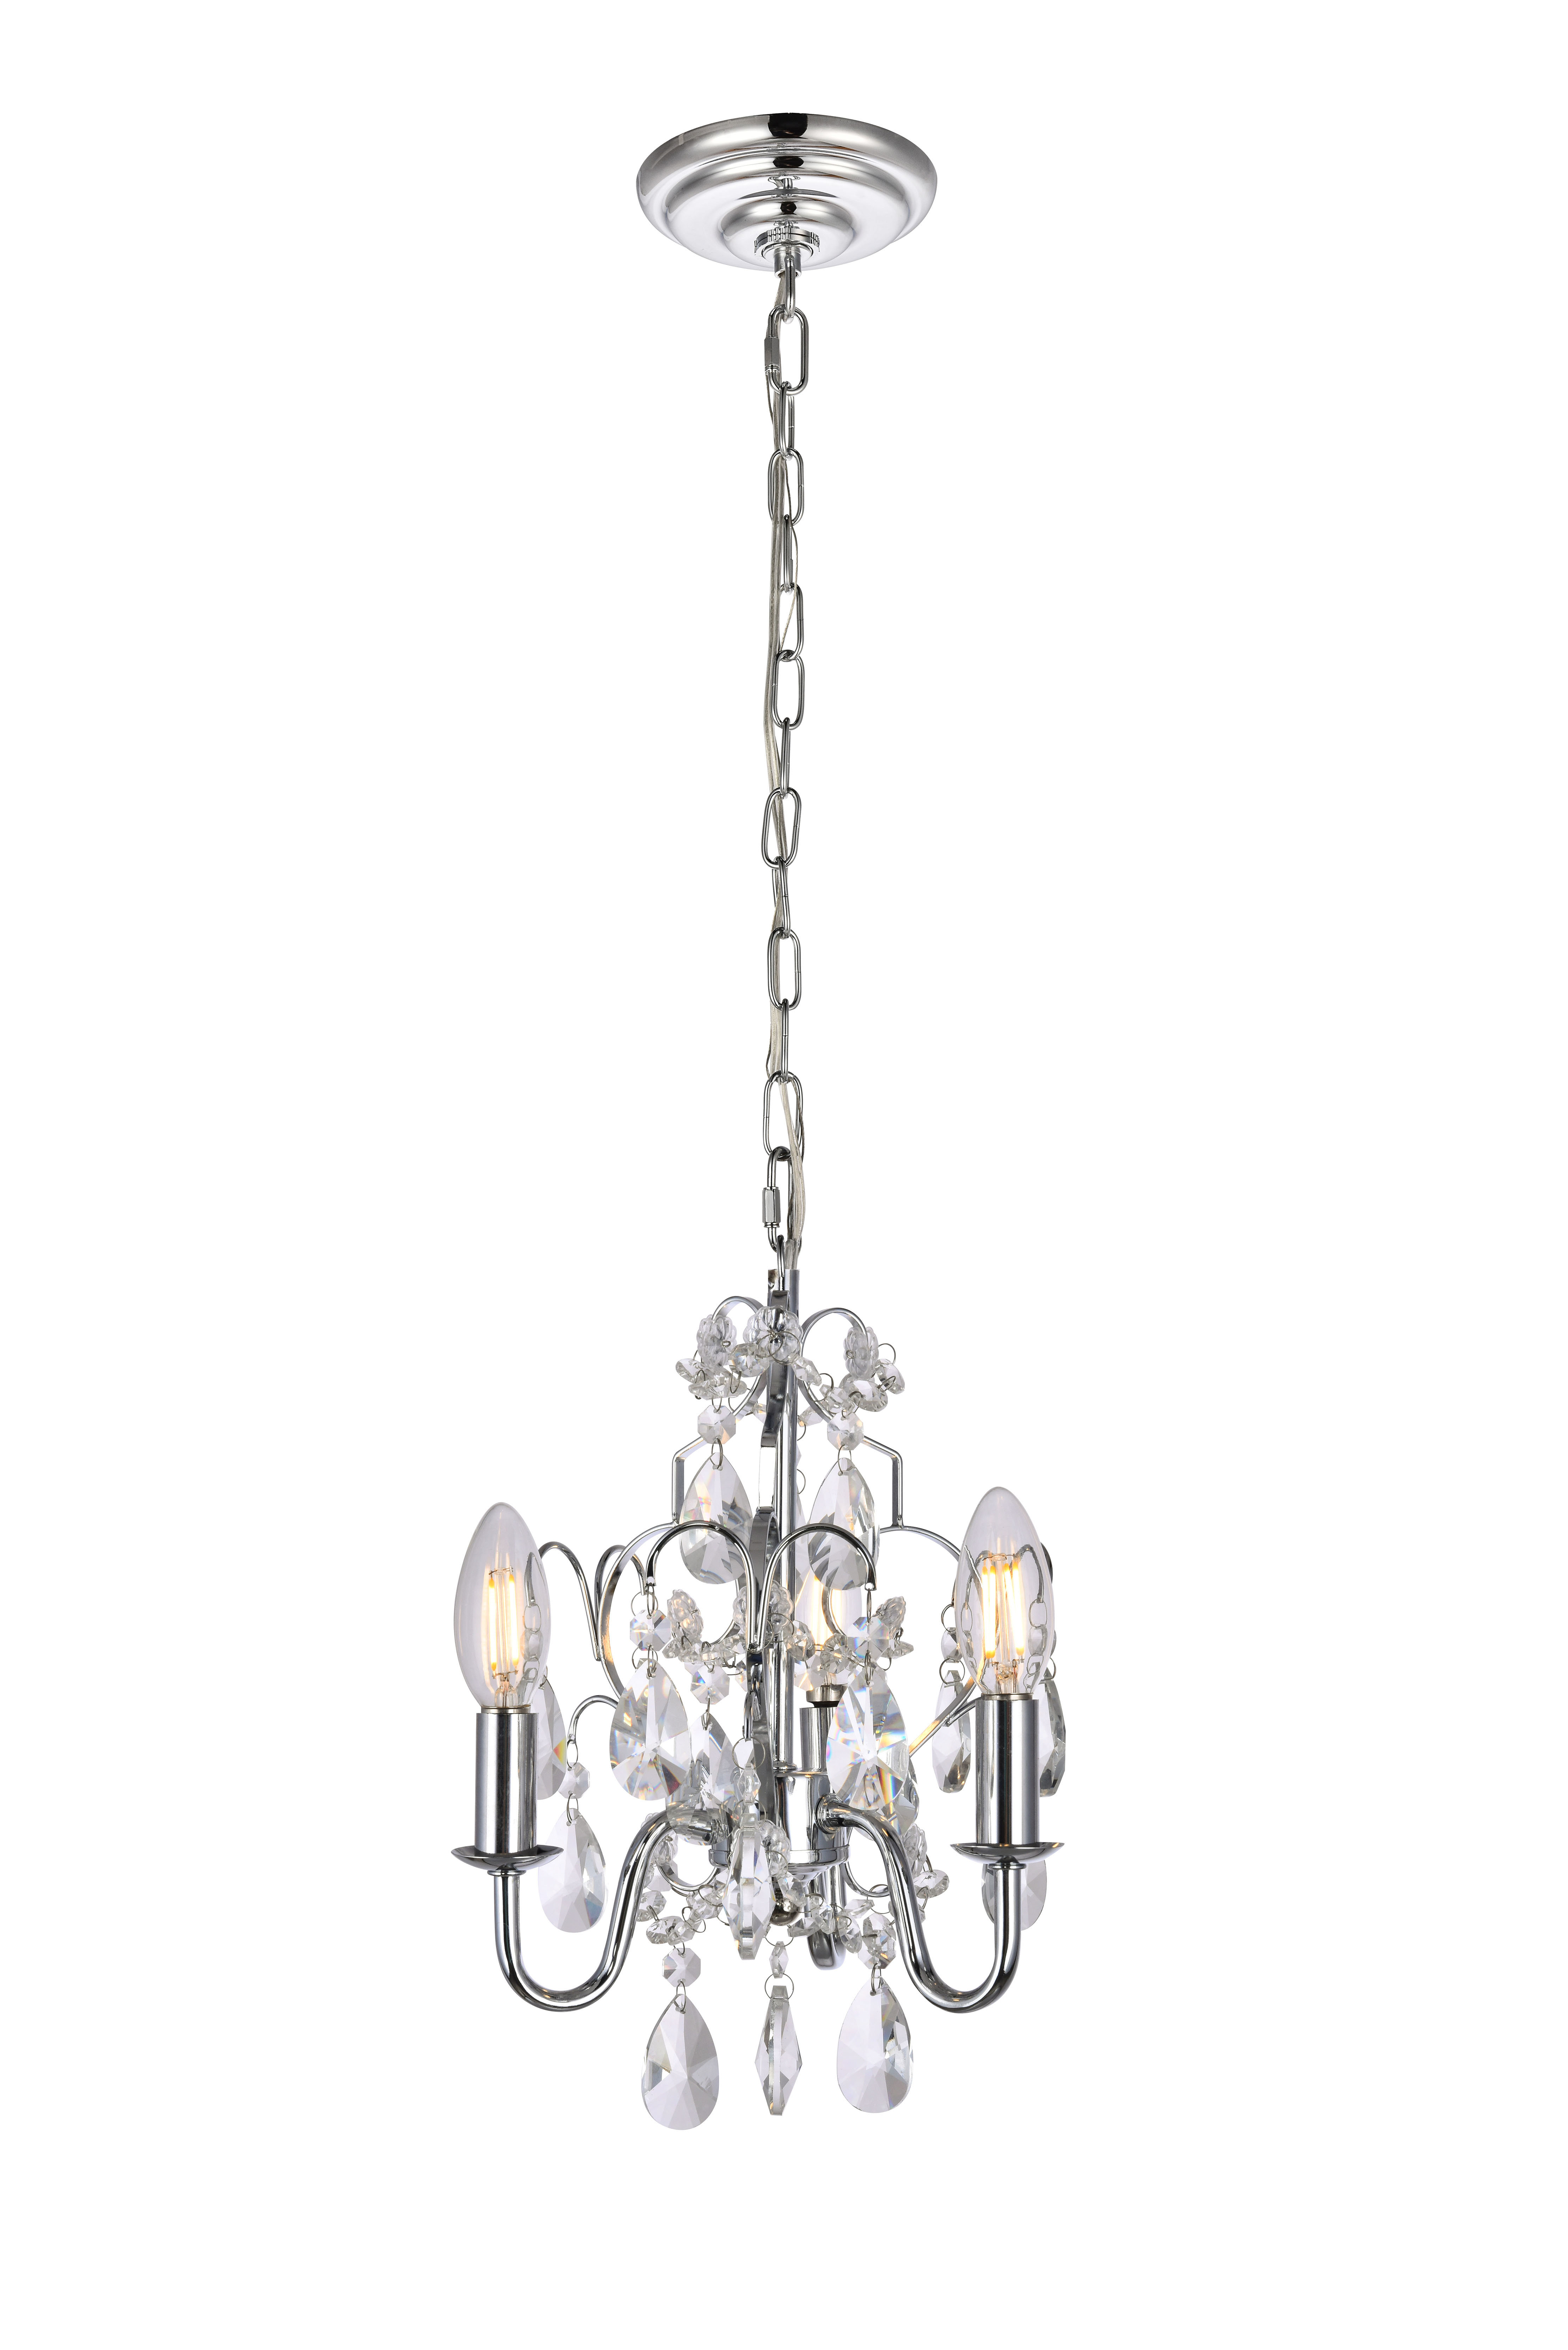 Dagnall 3 Light Candle Style Chandelier Throughout Benedetto 5 Light Crystal Chandeliers (Gallery 22 of 30)